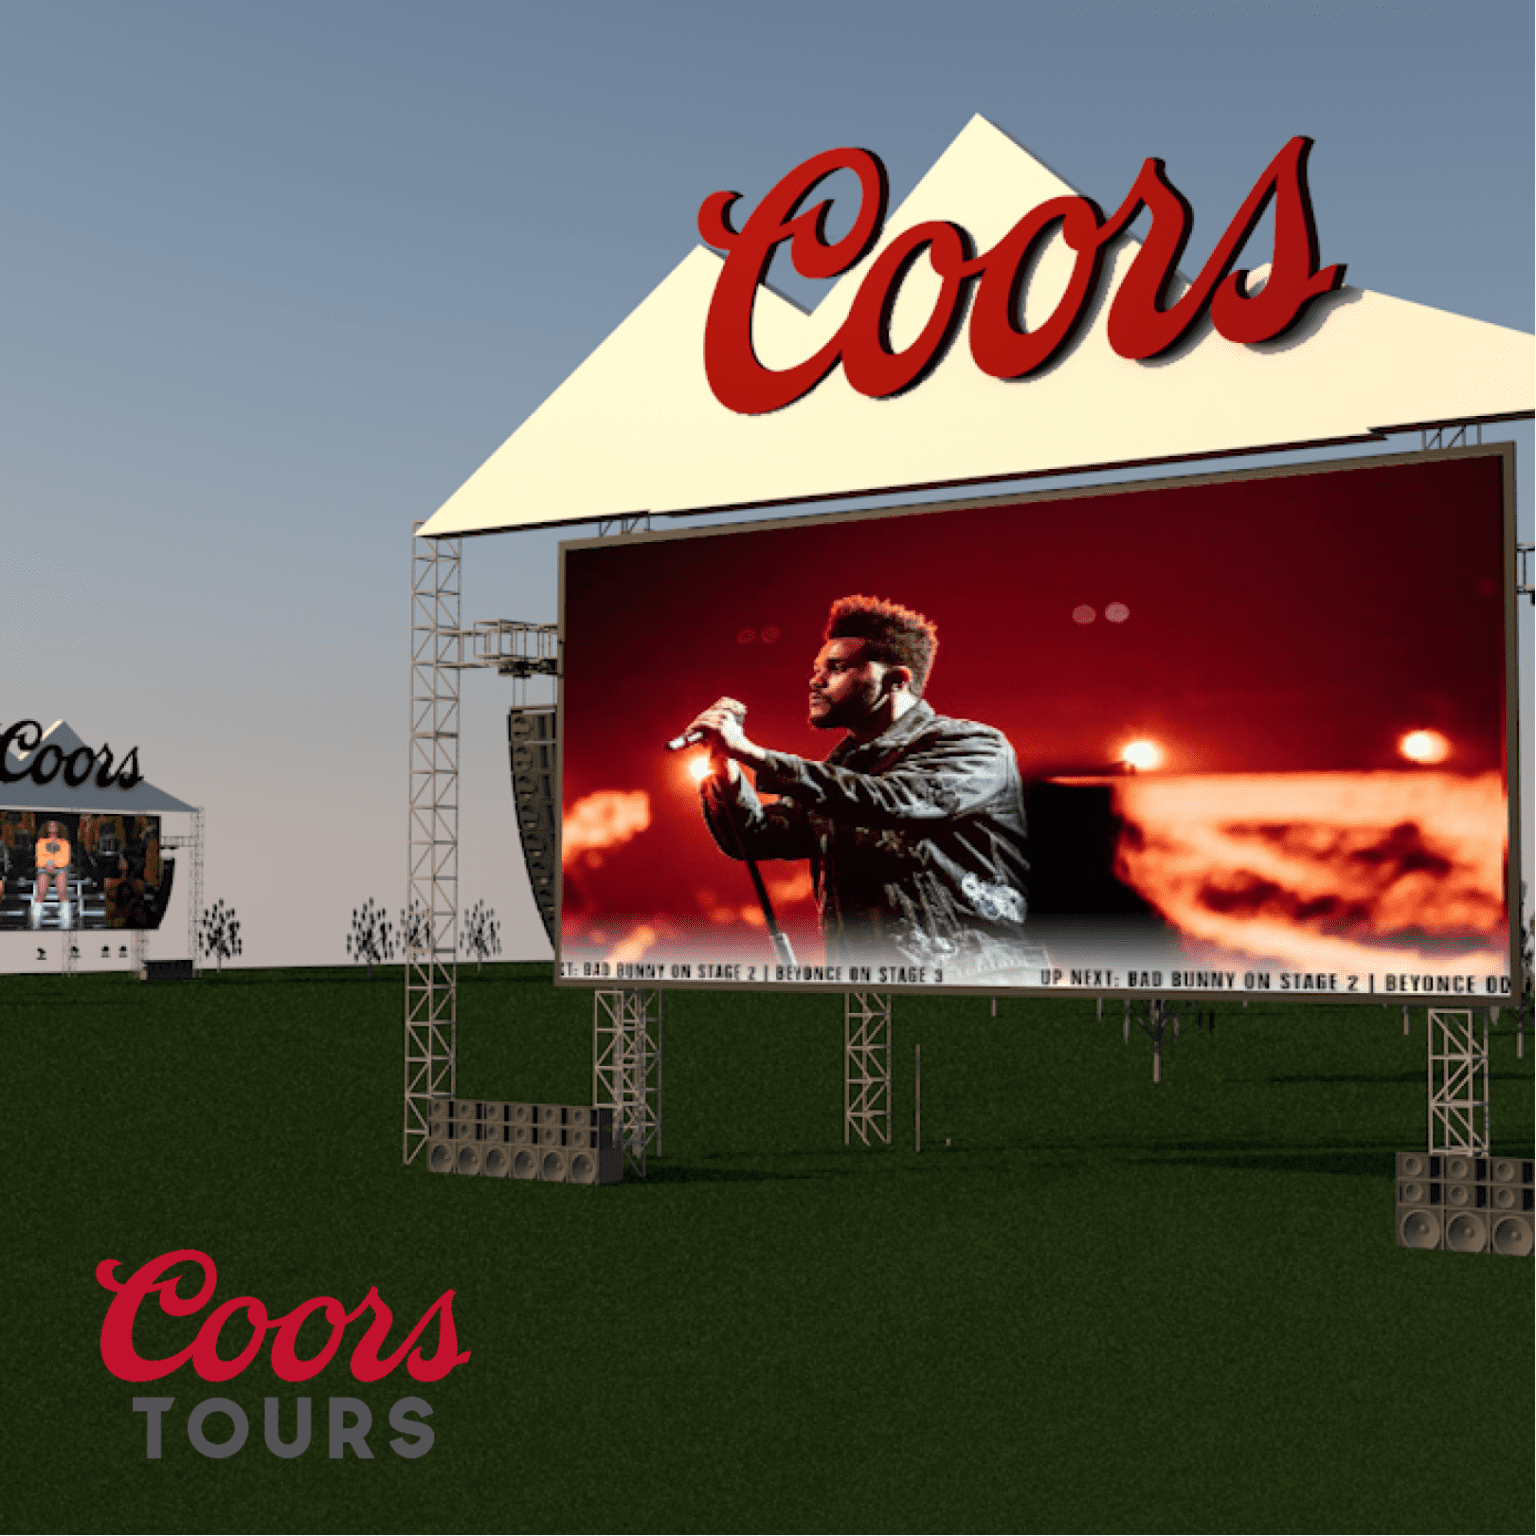 Coors Tours